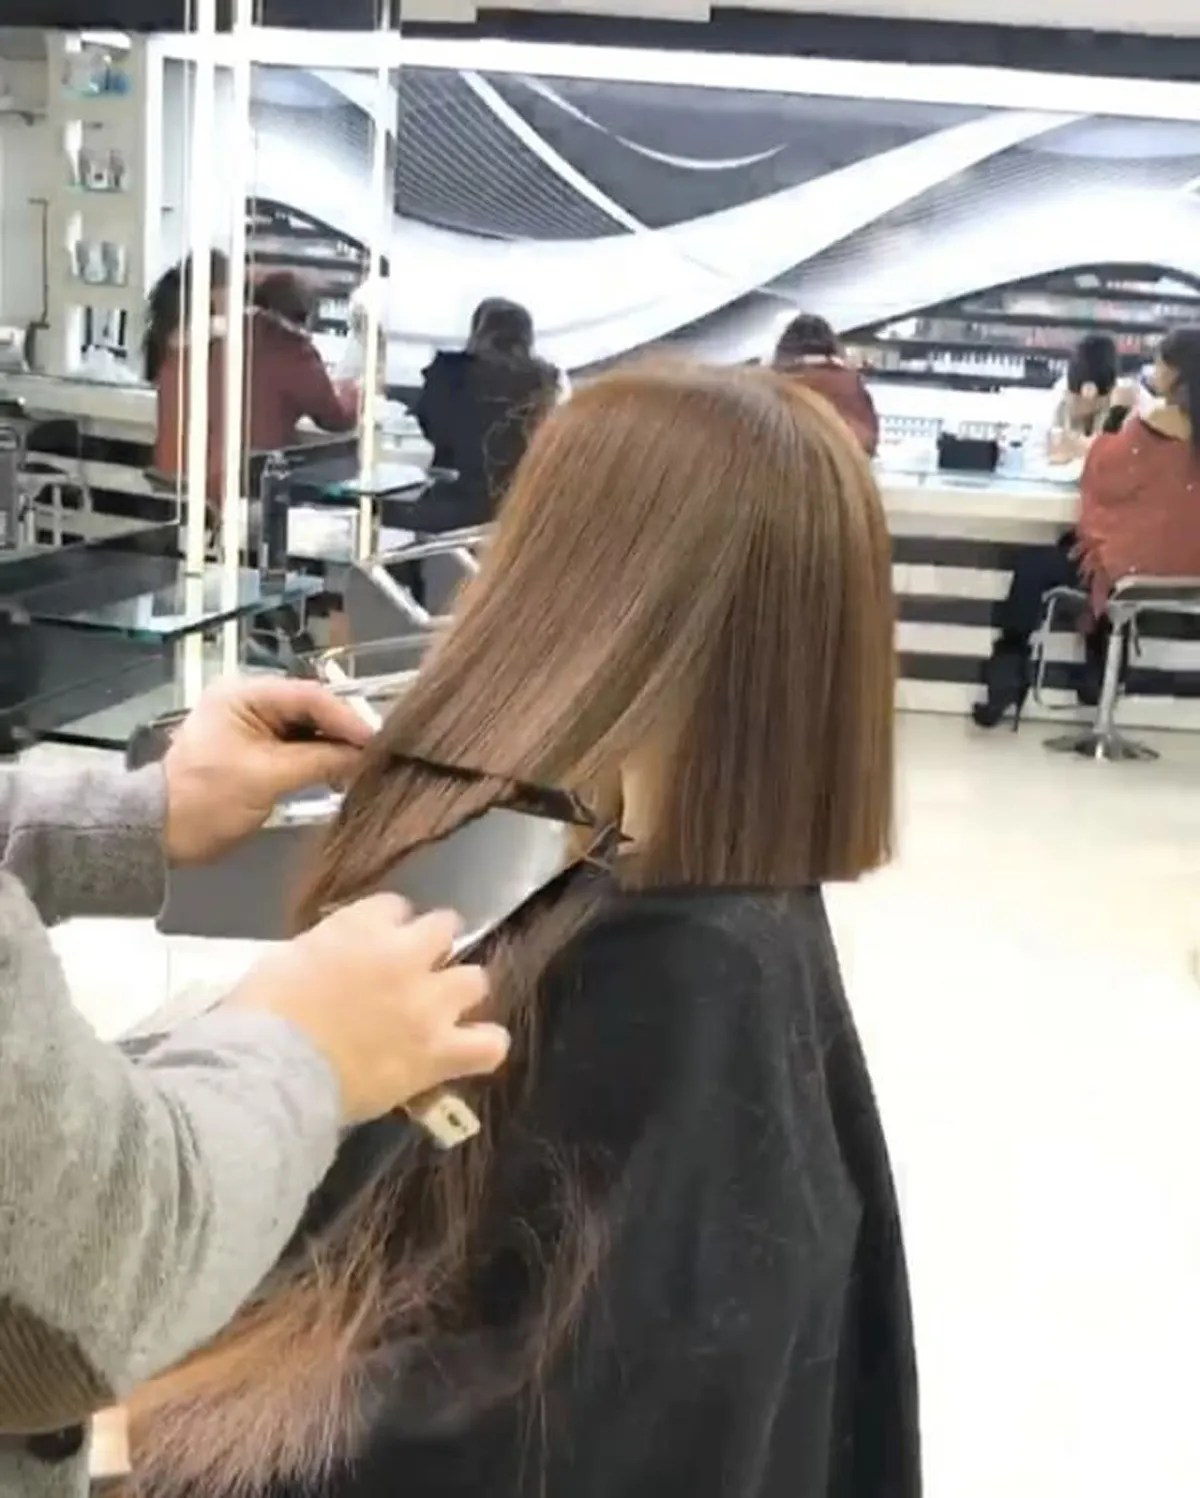 Salon Cut In Mounir Is The Lebanese Hairstylist Who Cuts A Perfect Bob